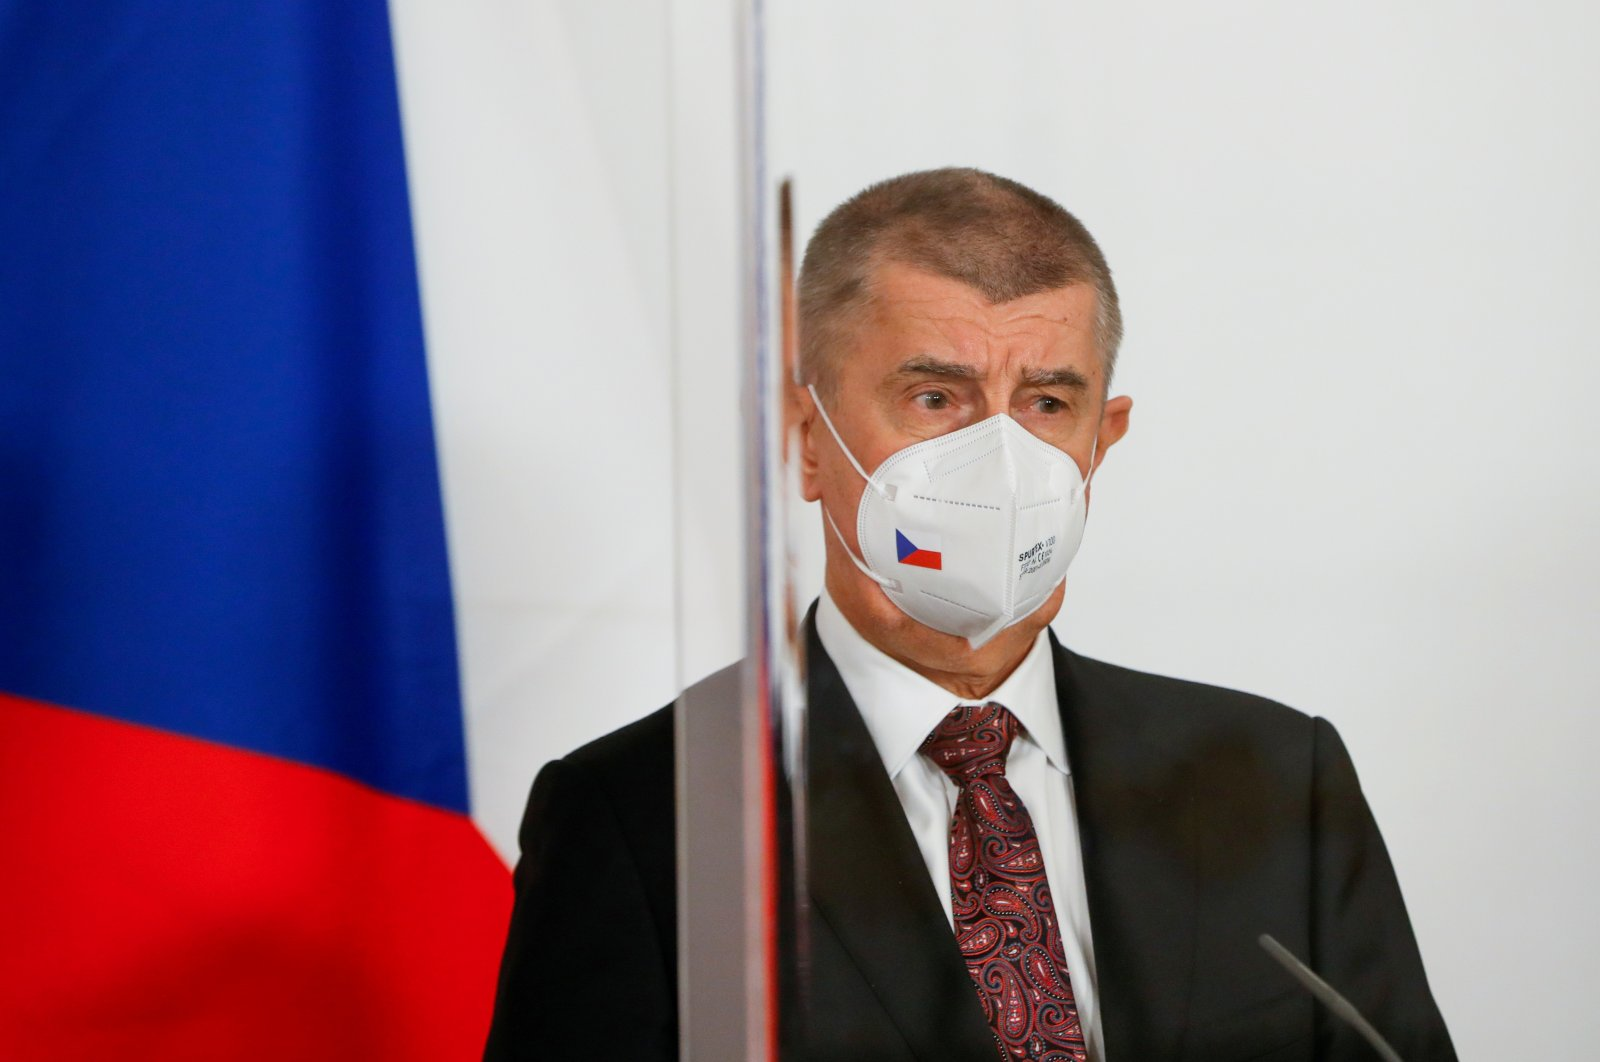 Czech Republic's Prime Minister Andrej Babis attends a news conference in Vienna, Austria, March 16, 2021. (Reuters Photo)